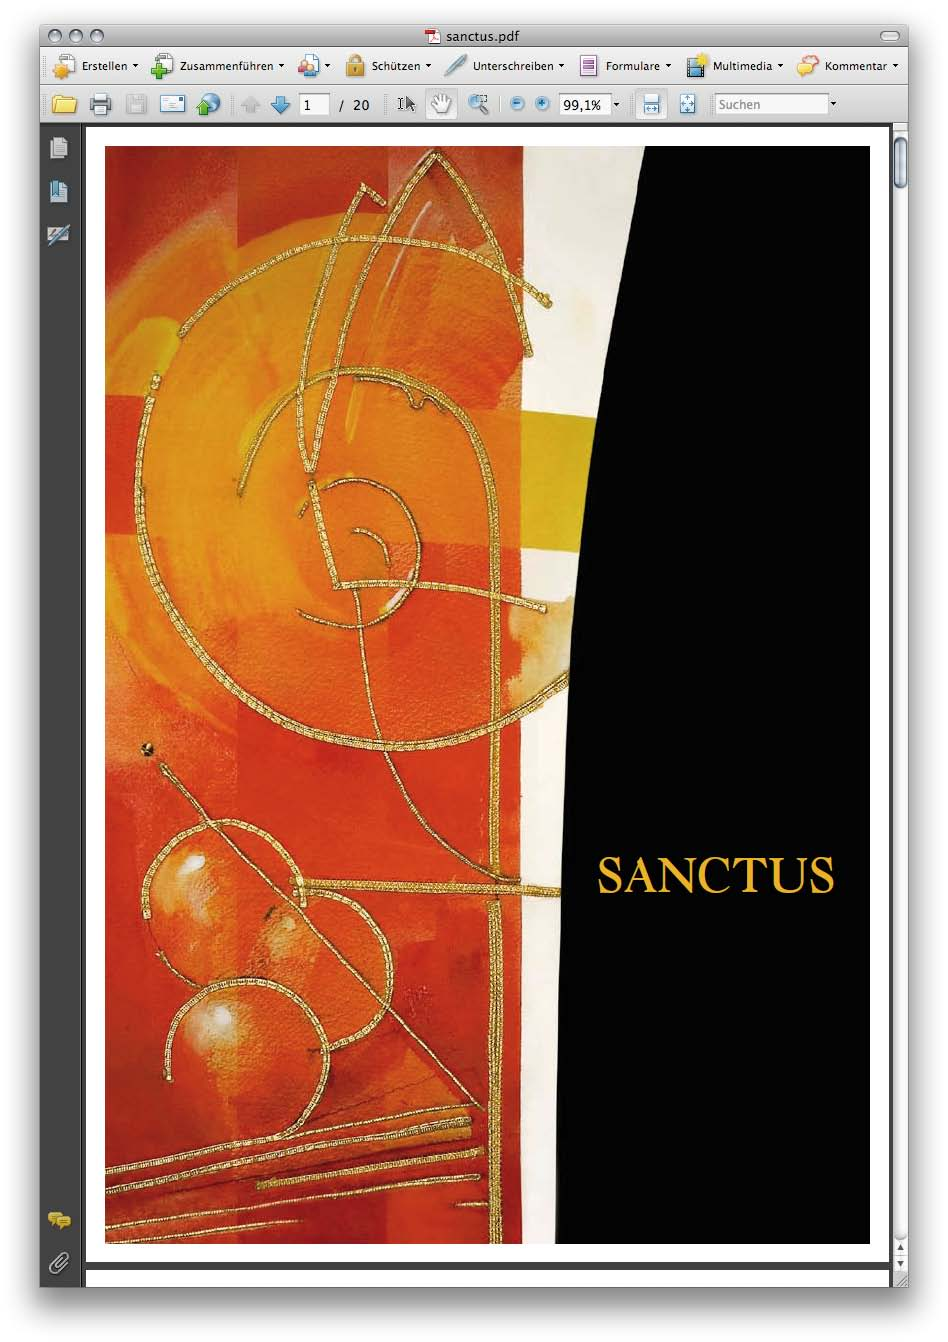 http://blog.atelier-muench.de/wp-content/uploads/2016/03/sanctus-1.pdf